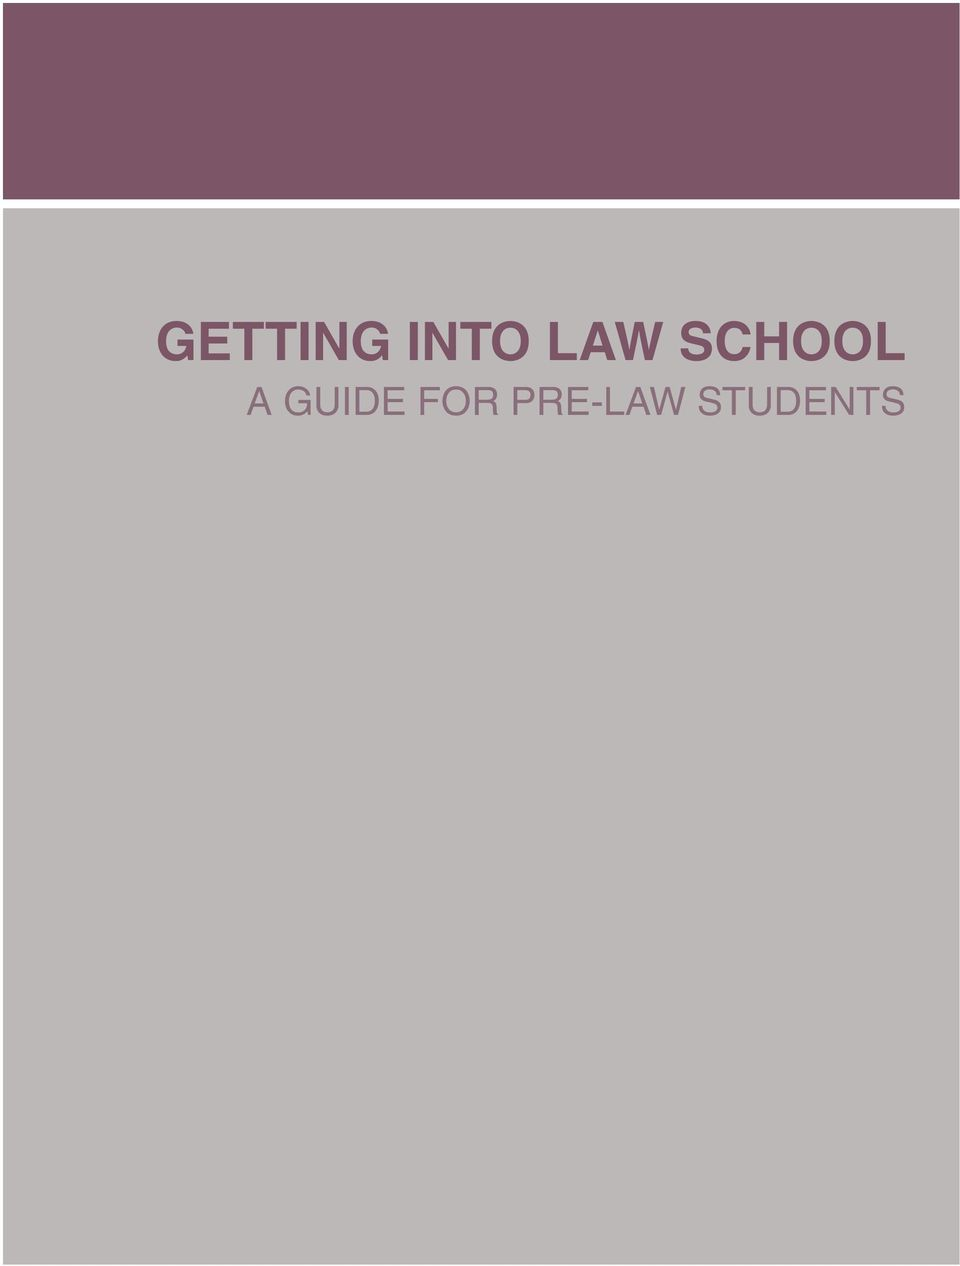 â getting into law school a guide for pre law students